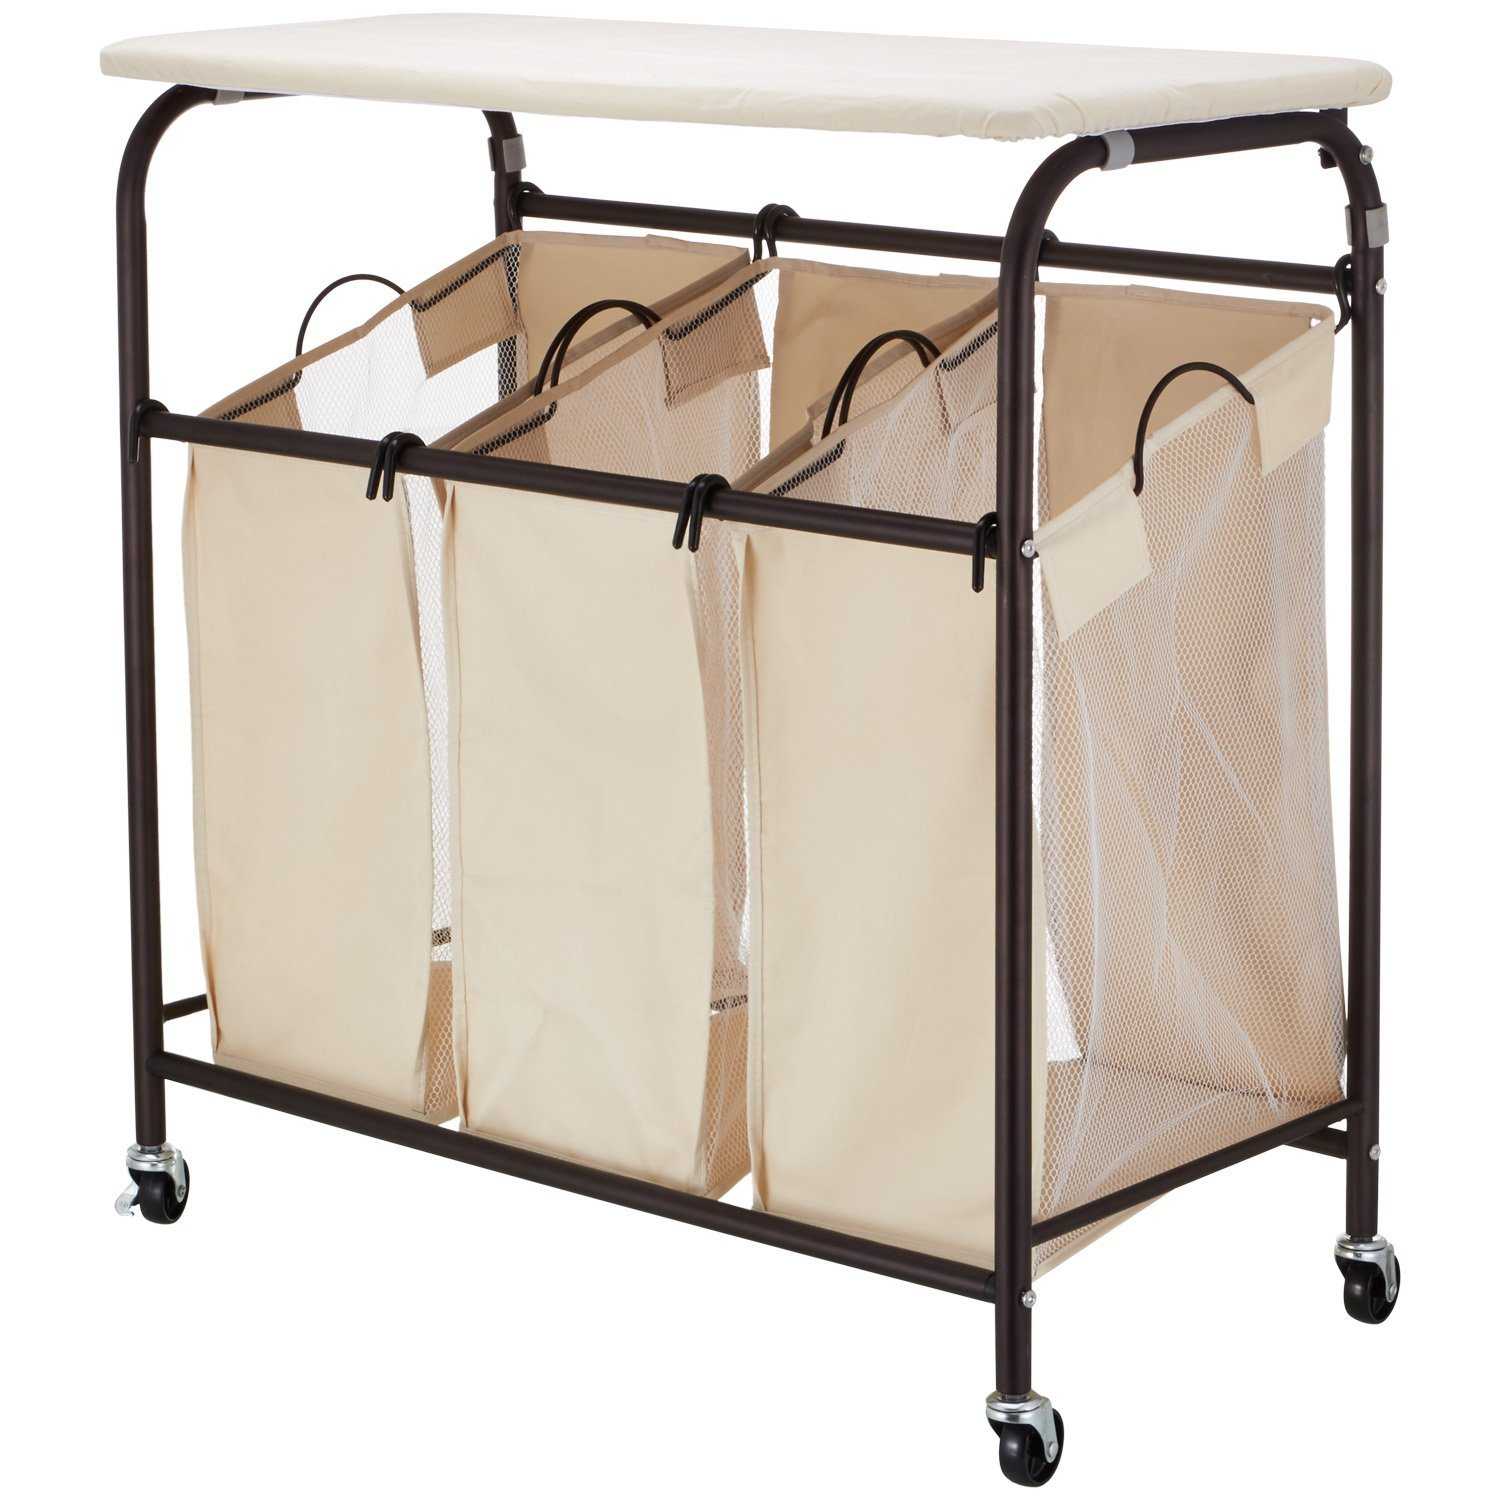 3 bag laundry sorter. Ollieroo Rolling Laundry Sorter Cart Heavy Duty 3 Bags With Ironing Board Bag I